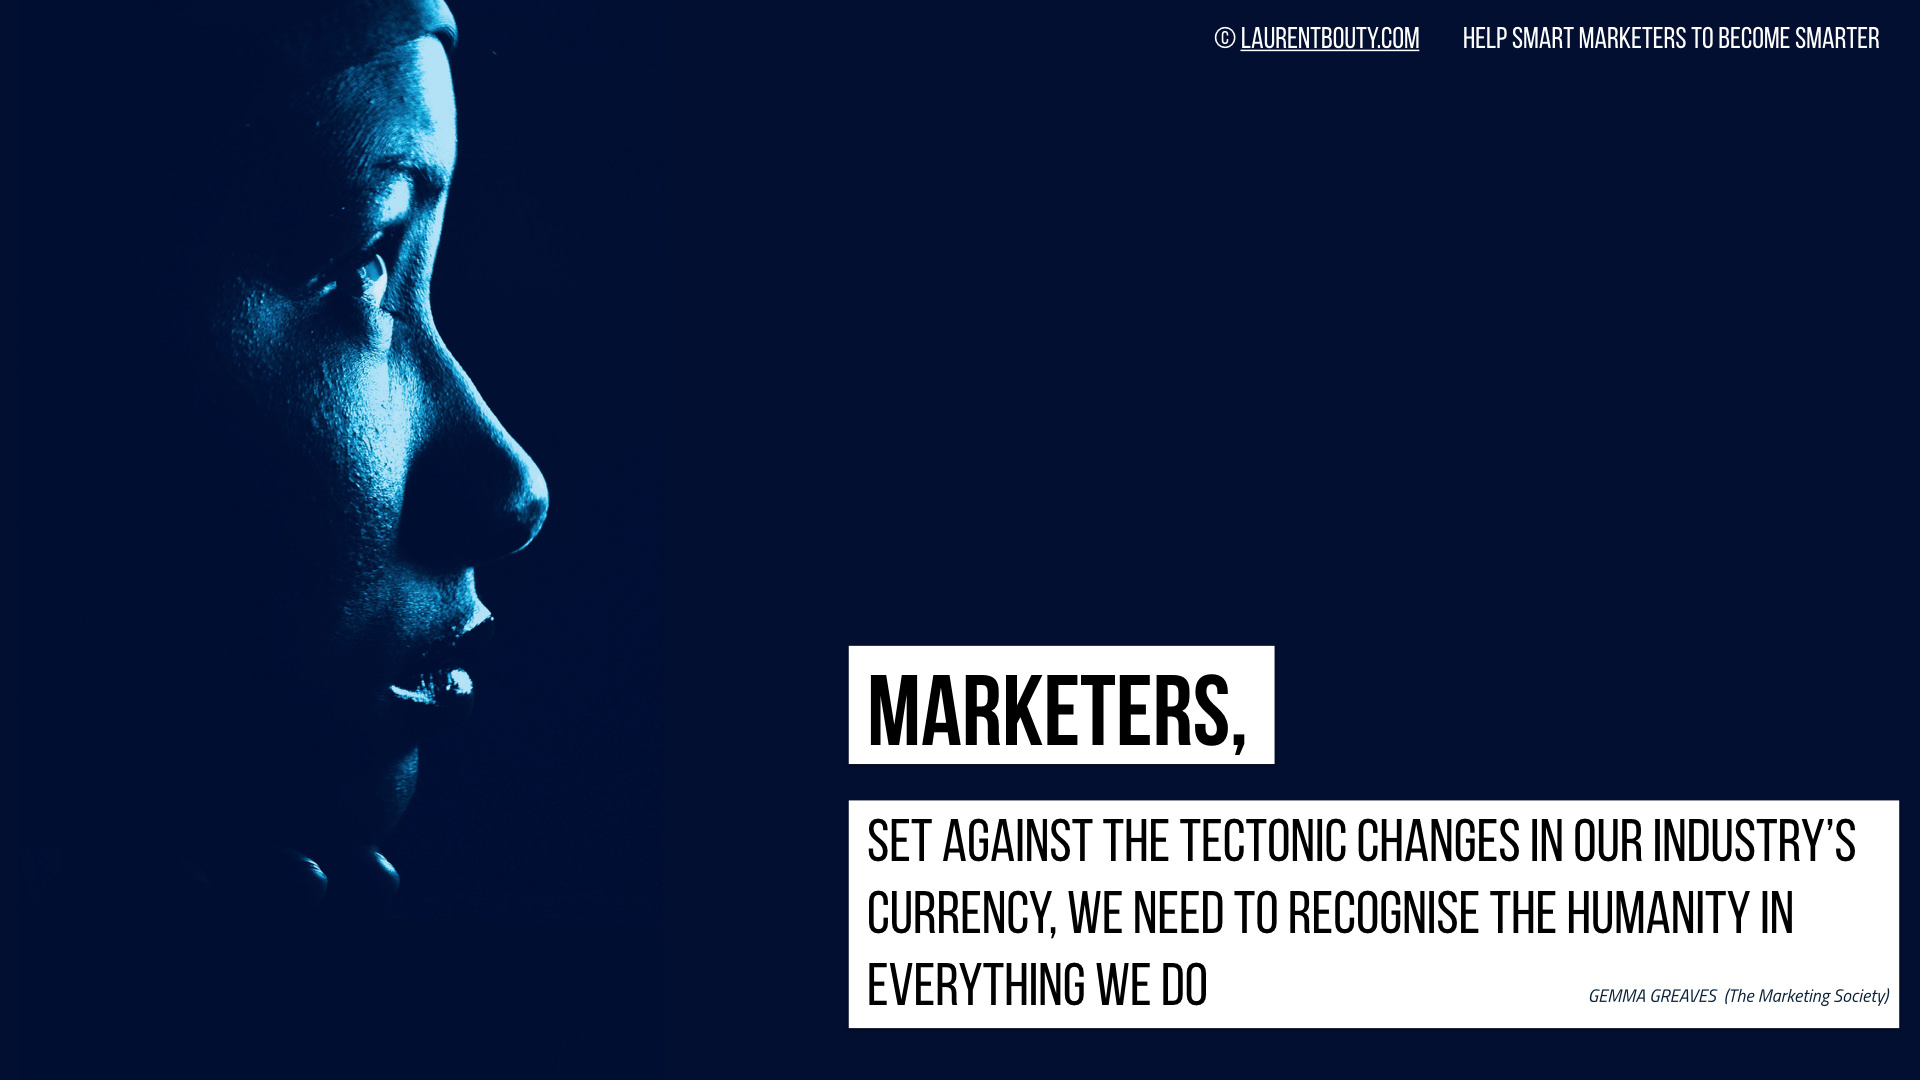 Marketers, Recognise Humanity in Everything We Do